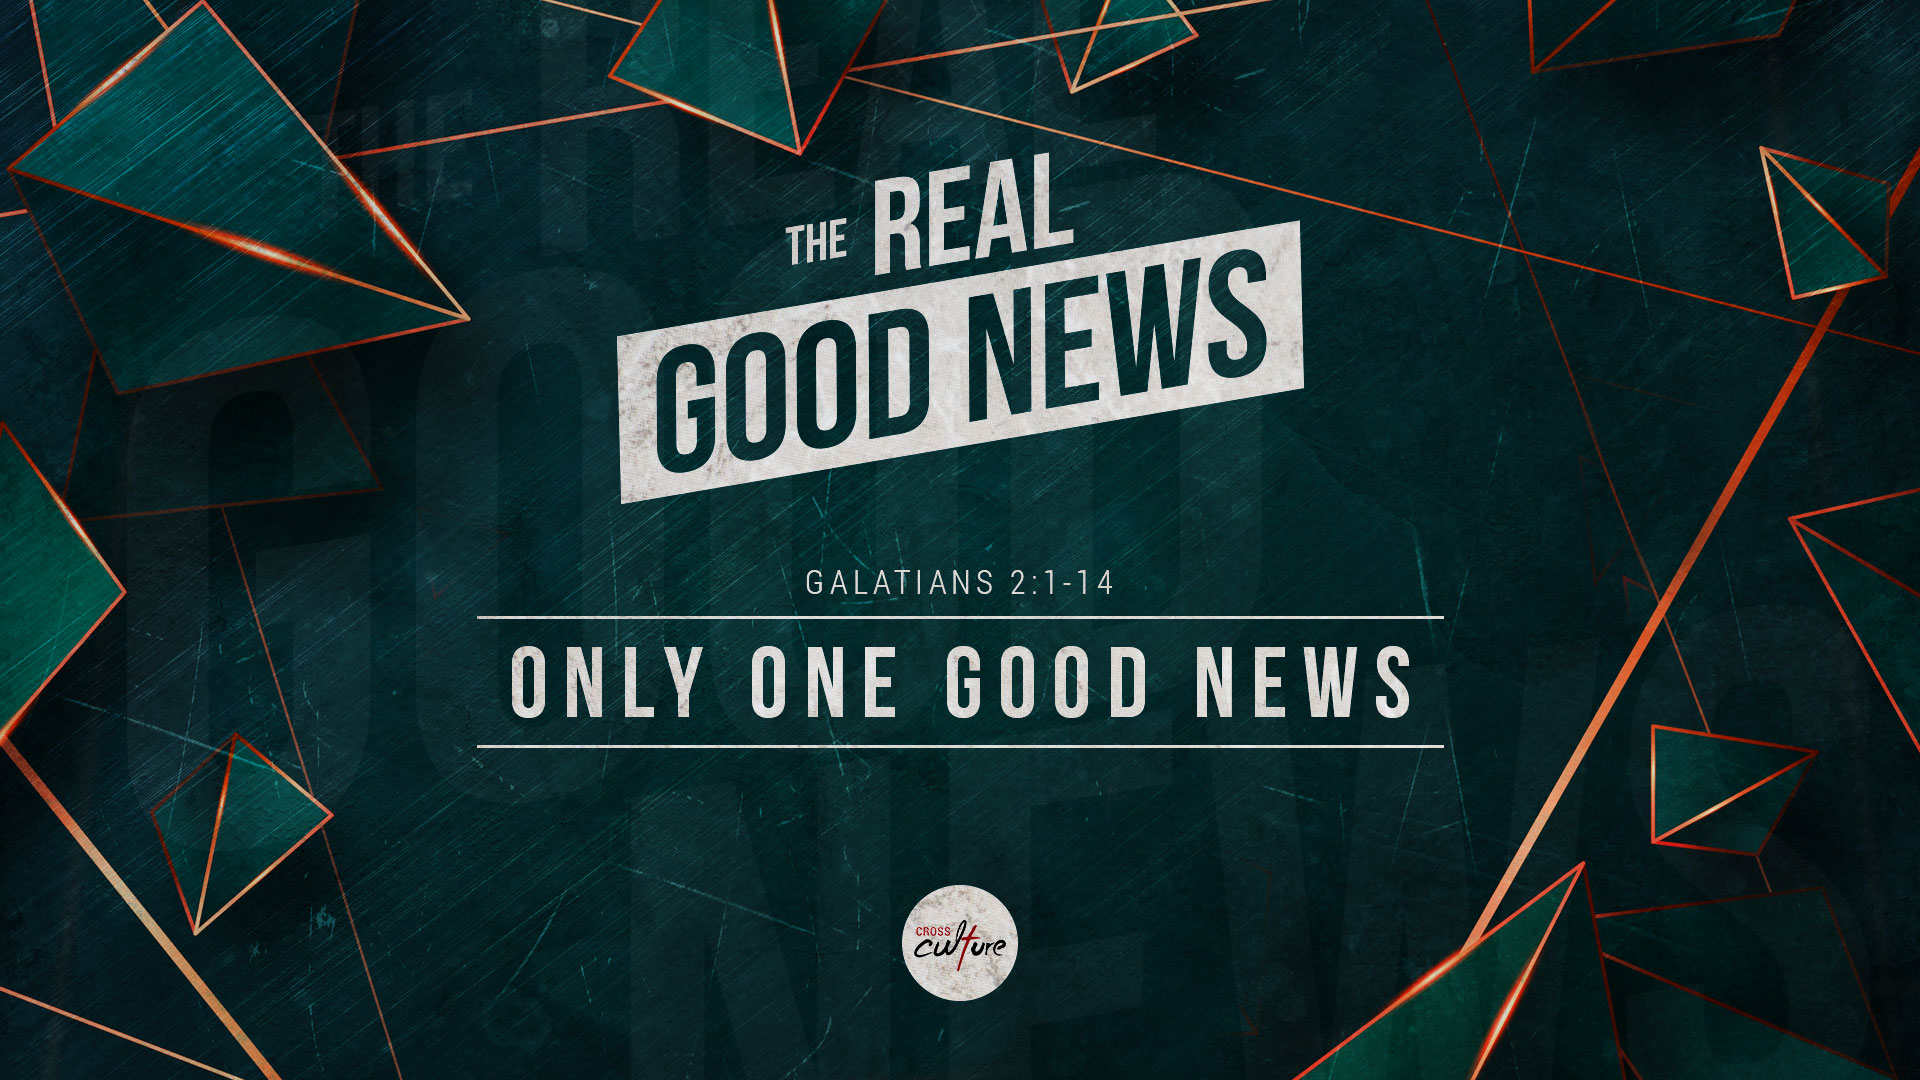 The Only Good News